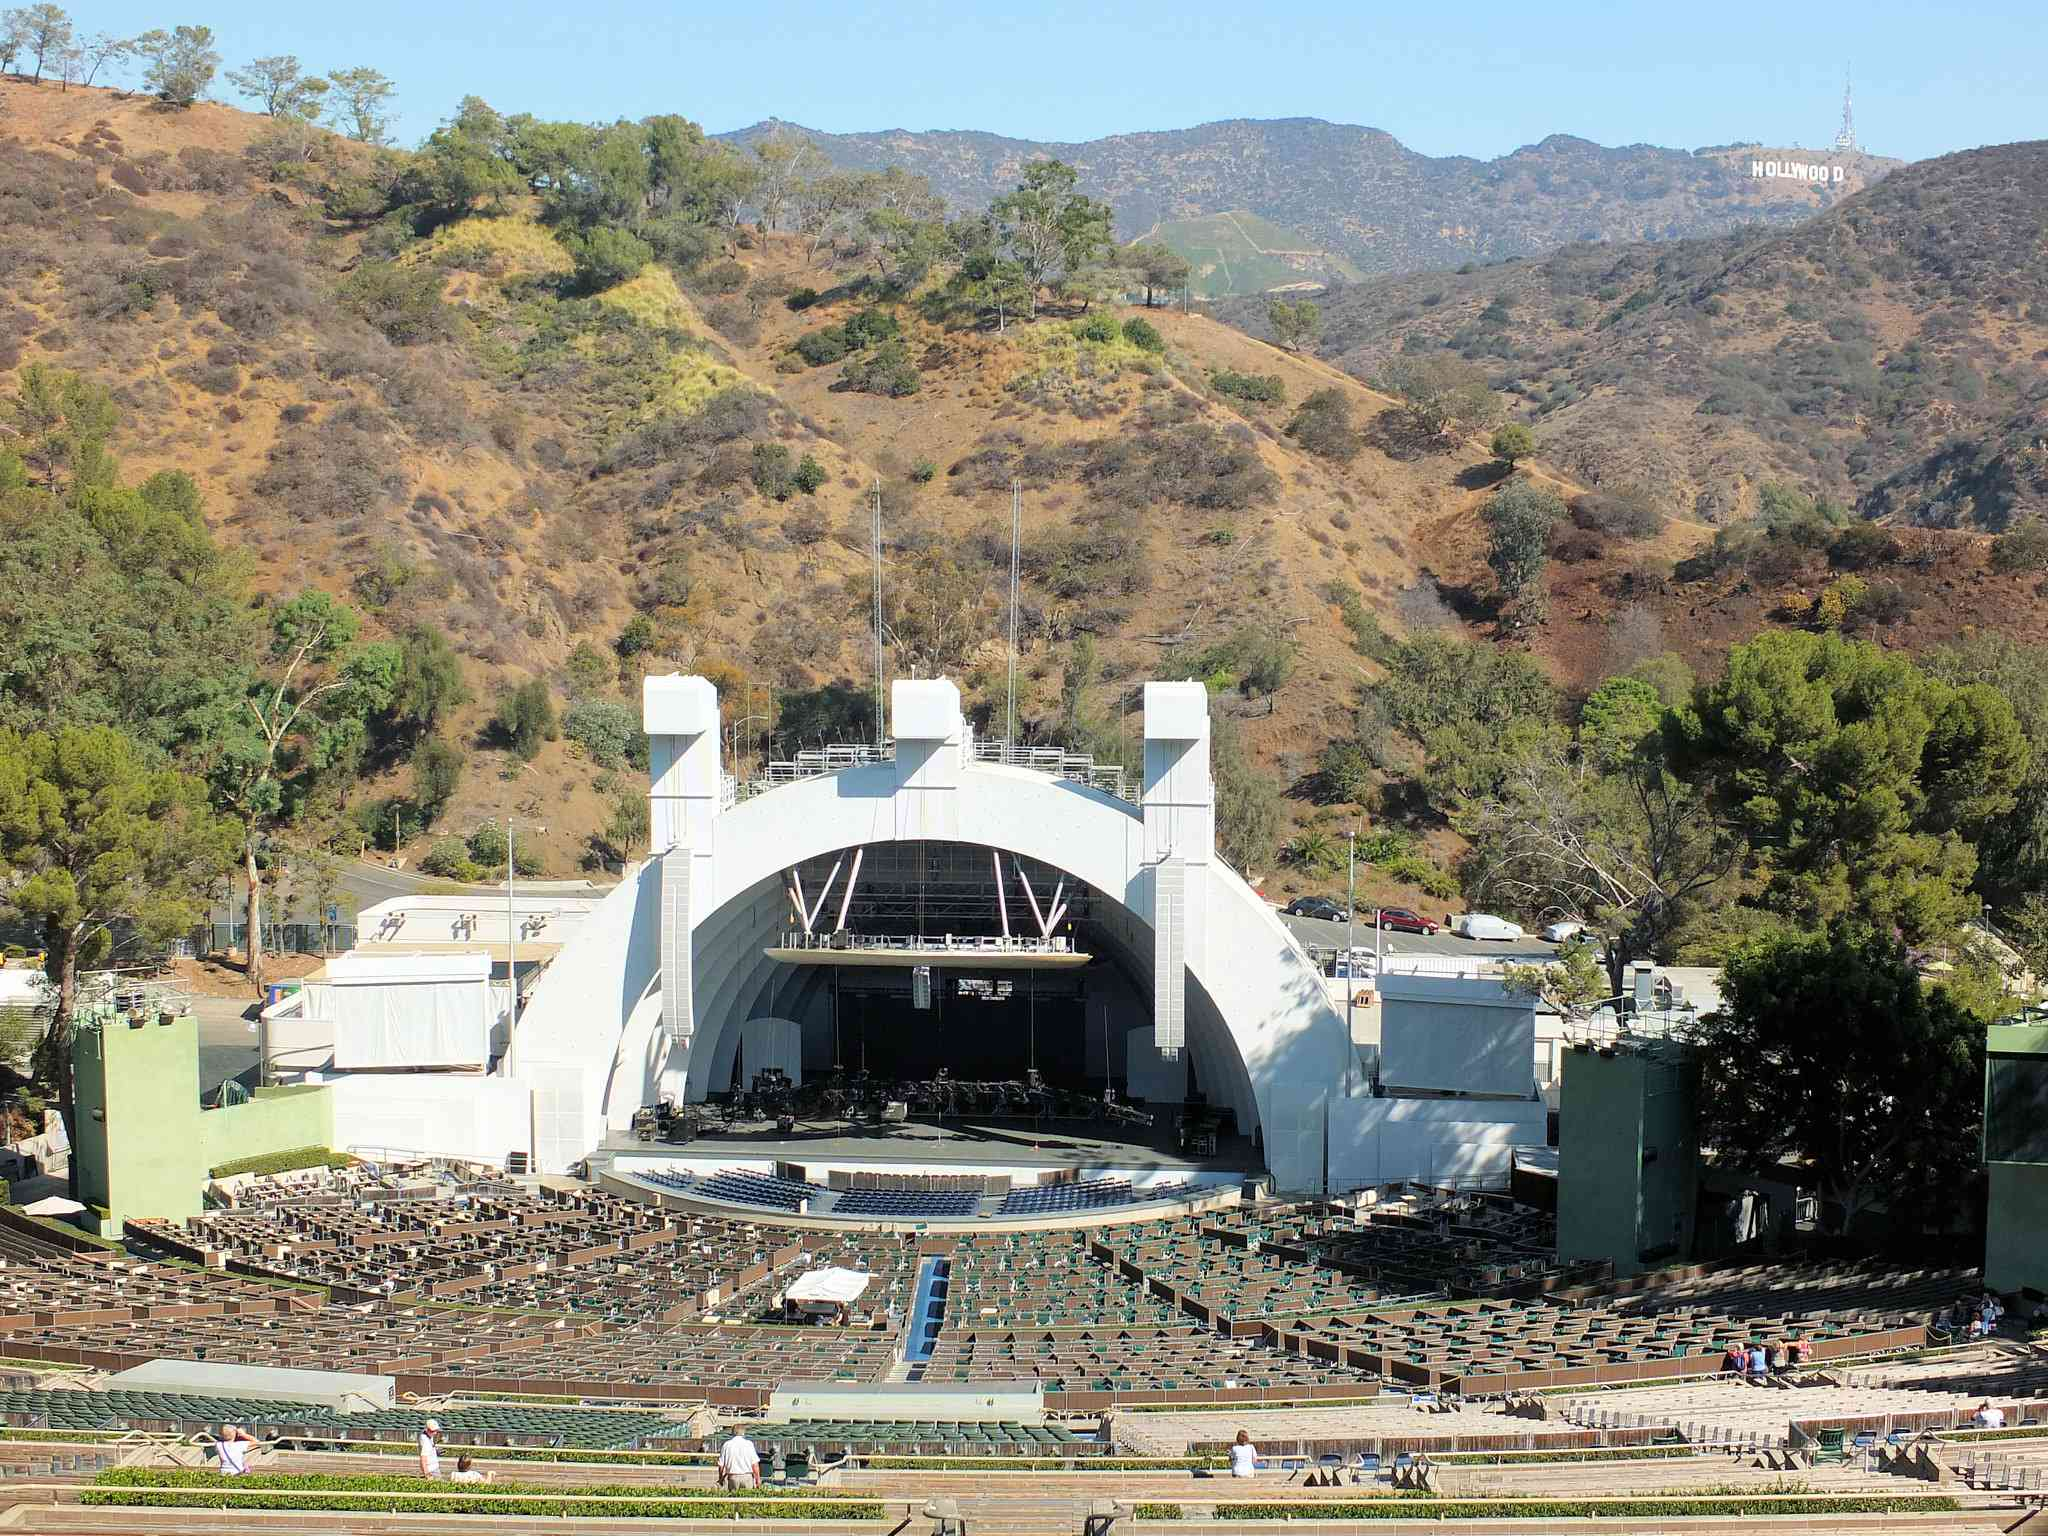 View looking down at Hollywood Bowl from top of seating area with mountains and blue sky in the background